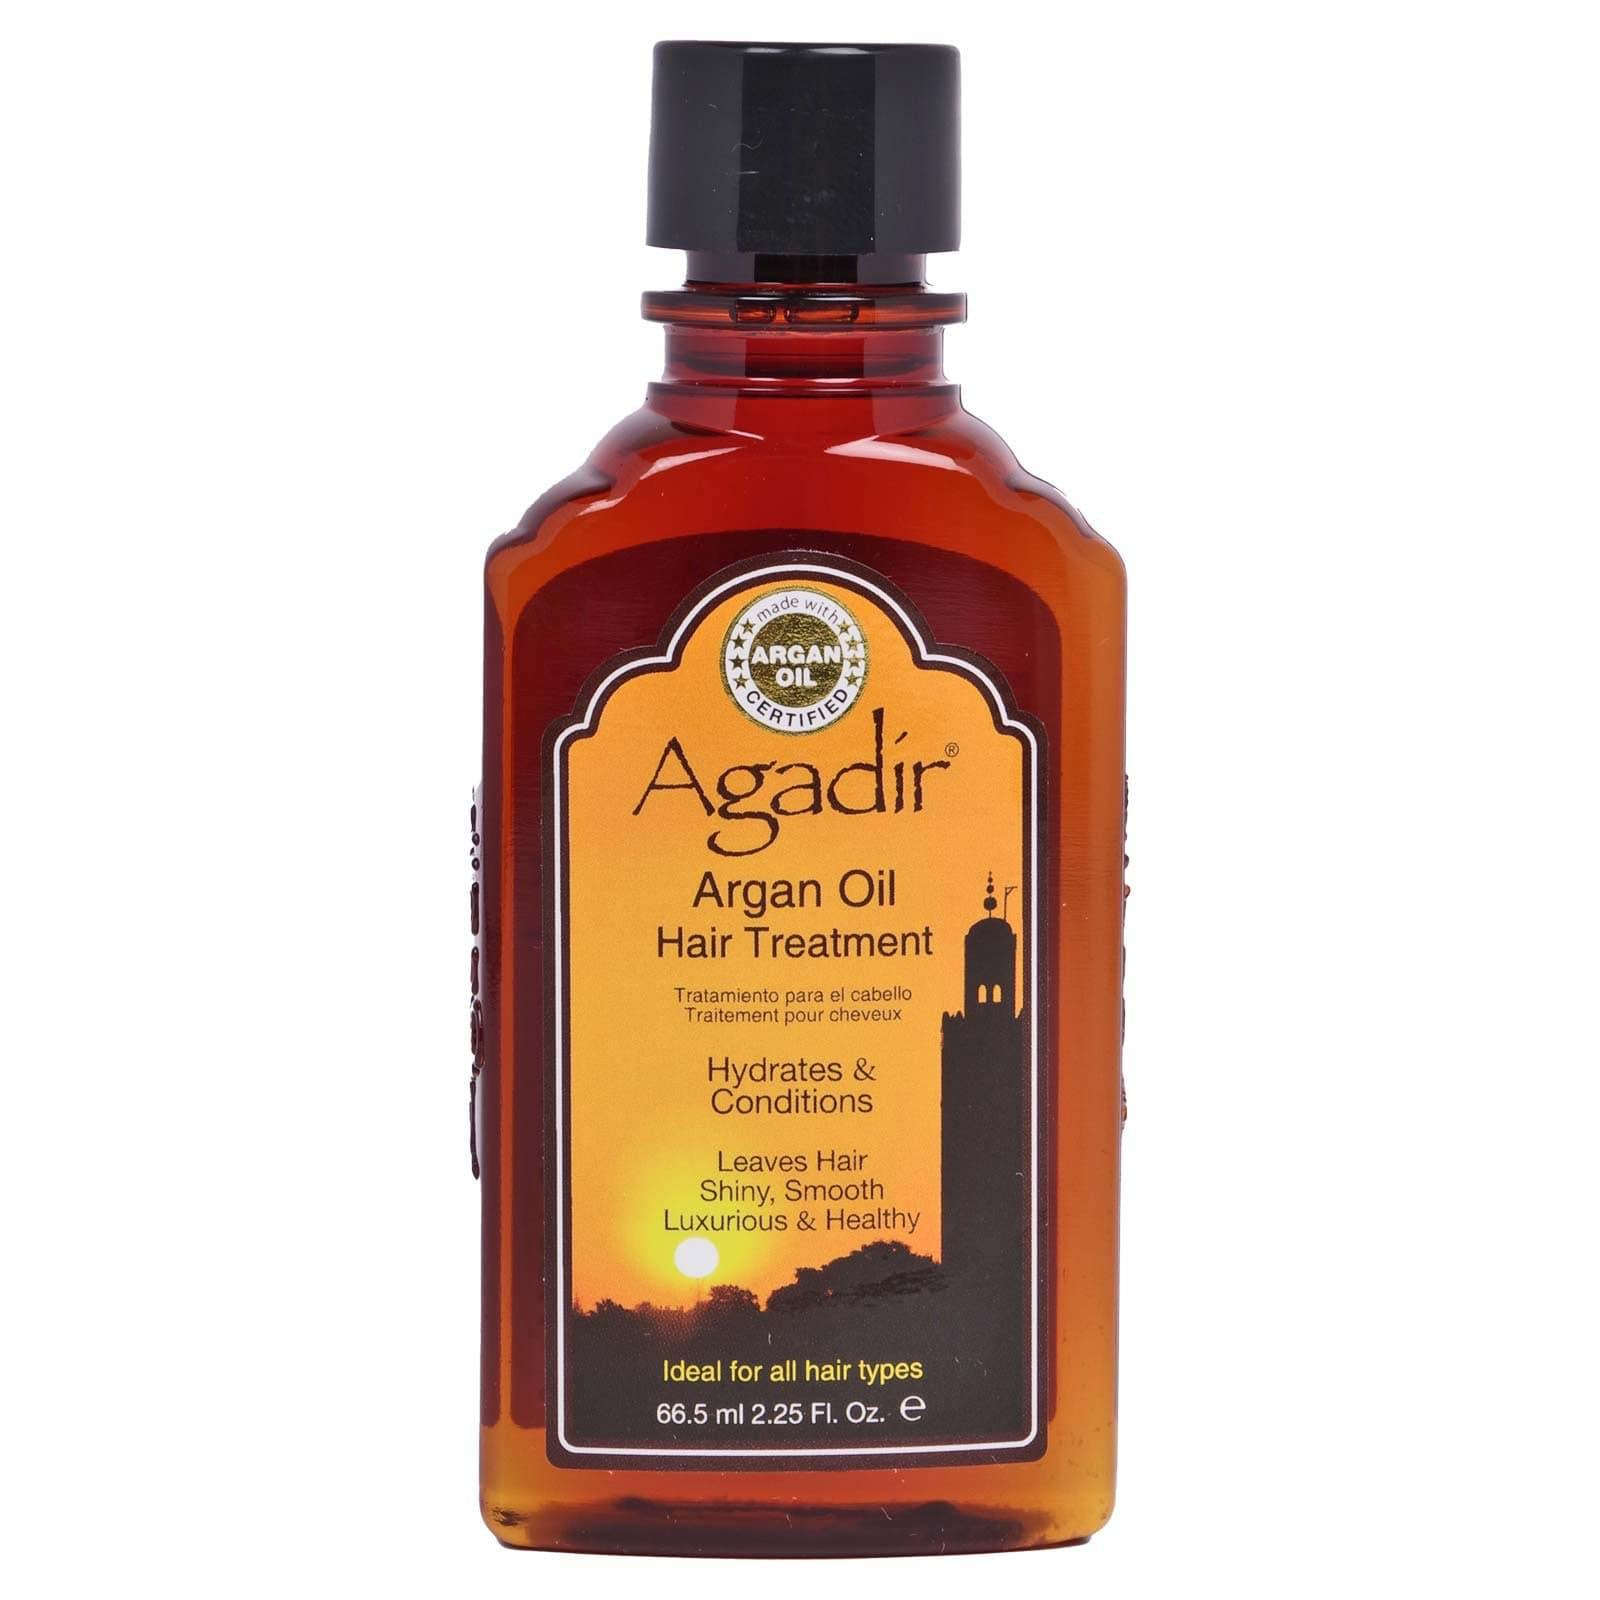 AGADIR ARGAN OIL TREATMENT, alcohol free, strengthens dry, brittle hair - (2.25oz) (12/cs)